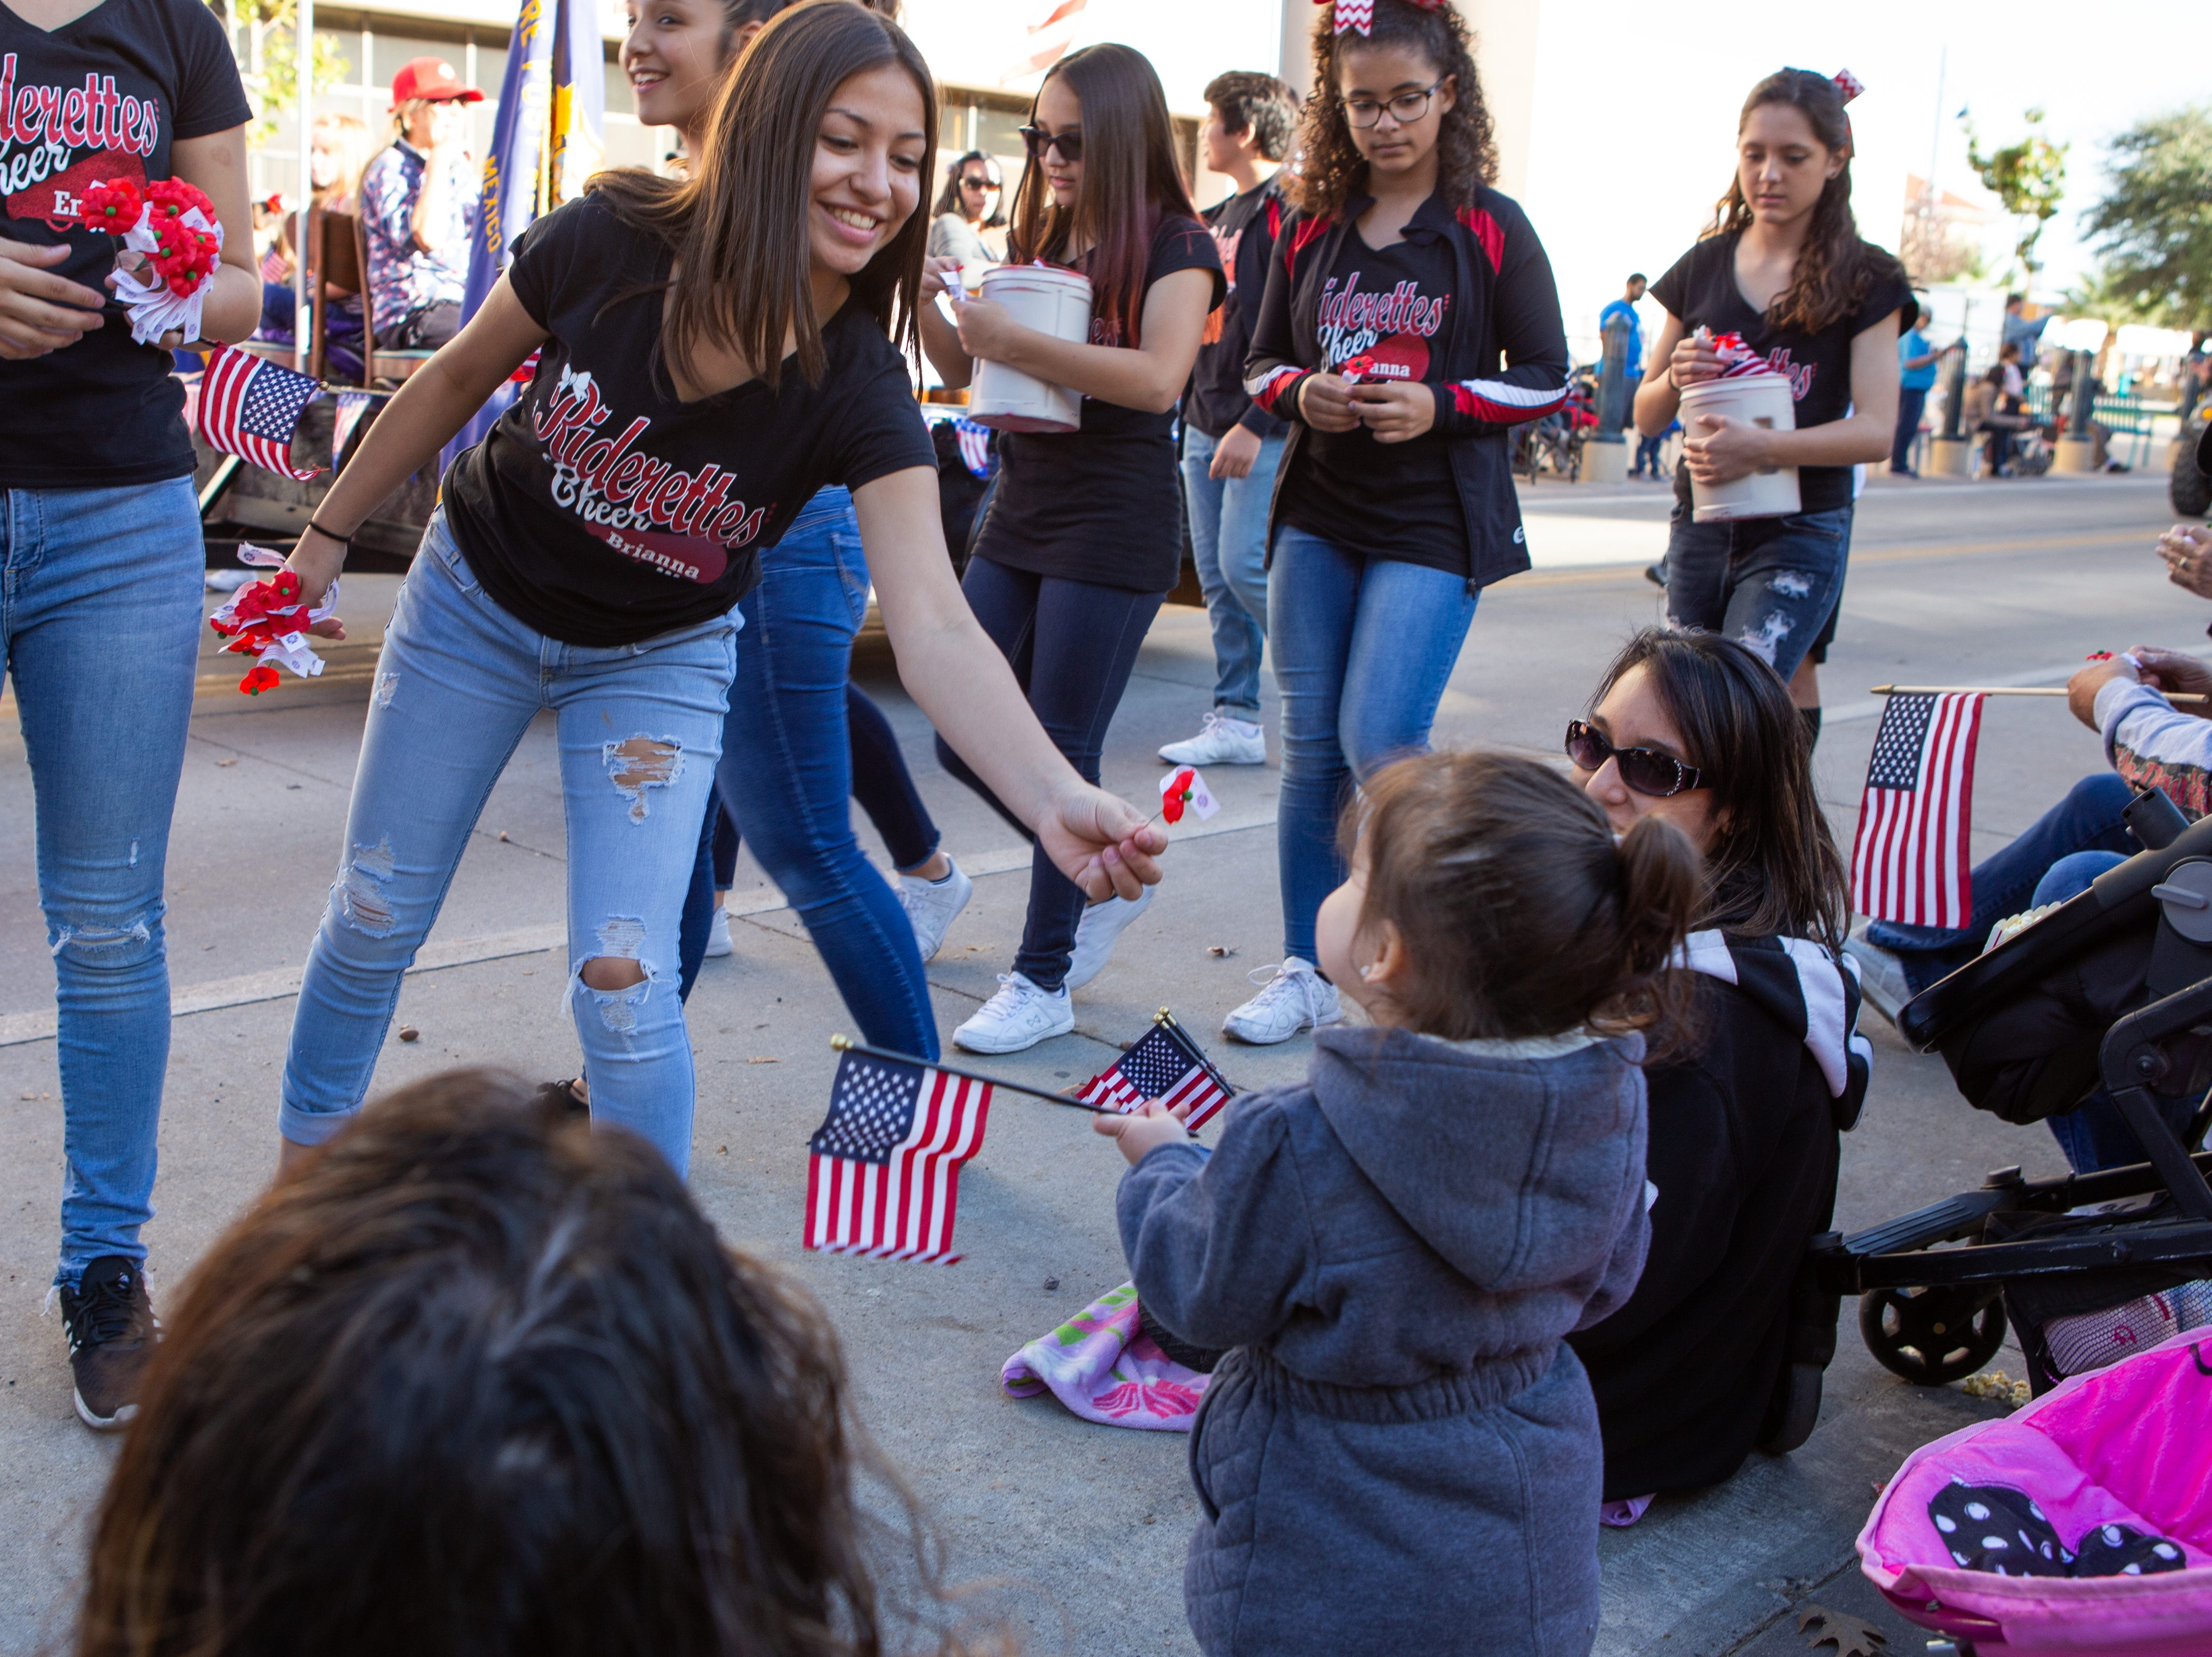 Riderette Cheer Team member Briana Ramirez, 13, hands a poppy to Zoey Hernandez, 2, during the Veterans Day Parade held on November 10, 2018.